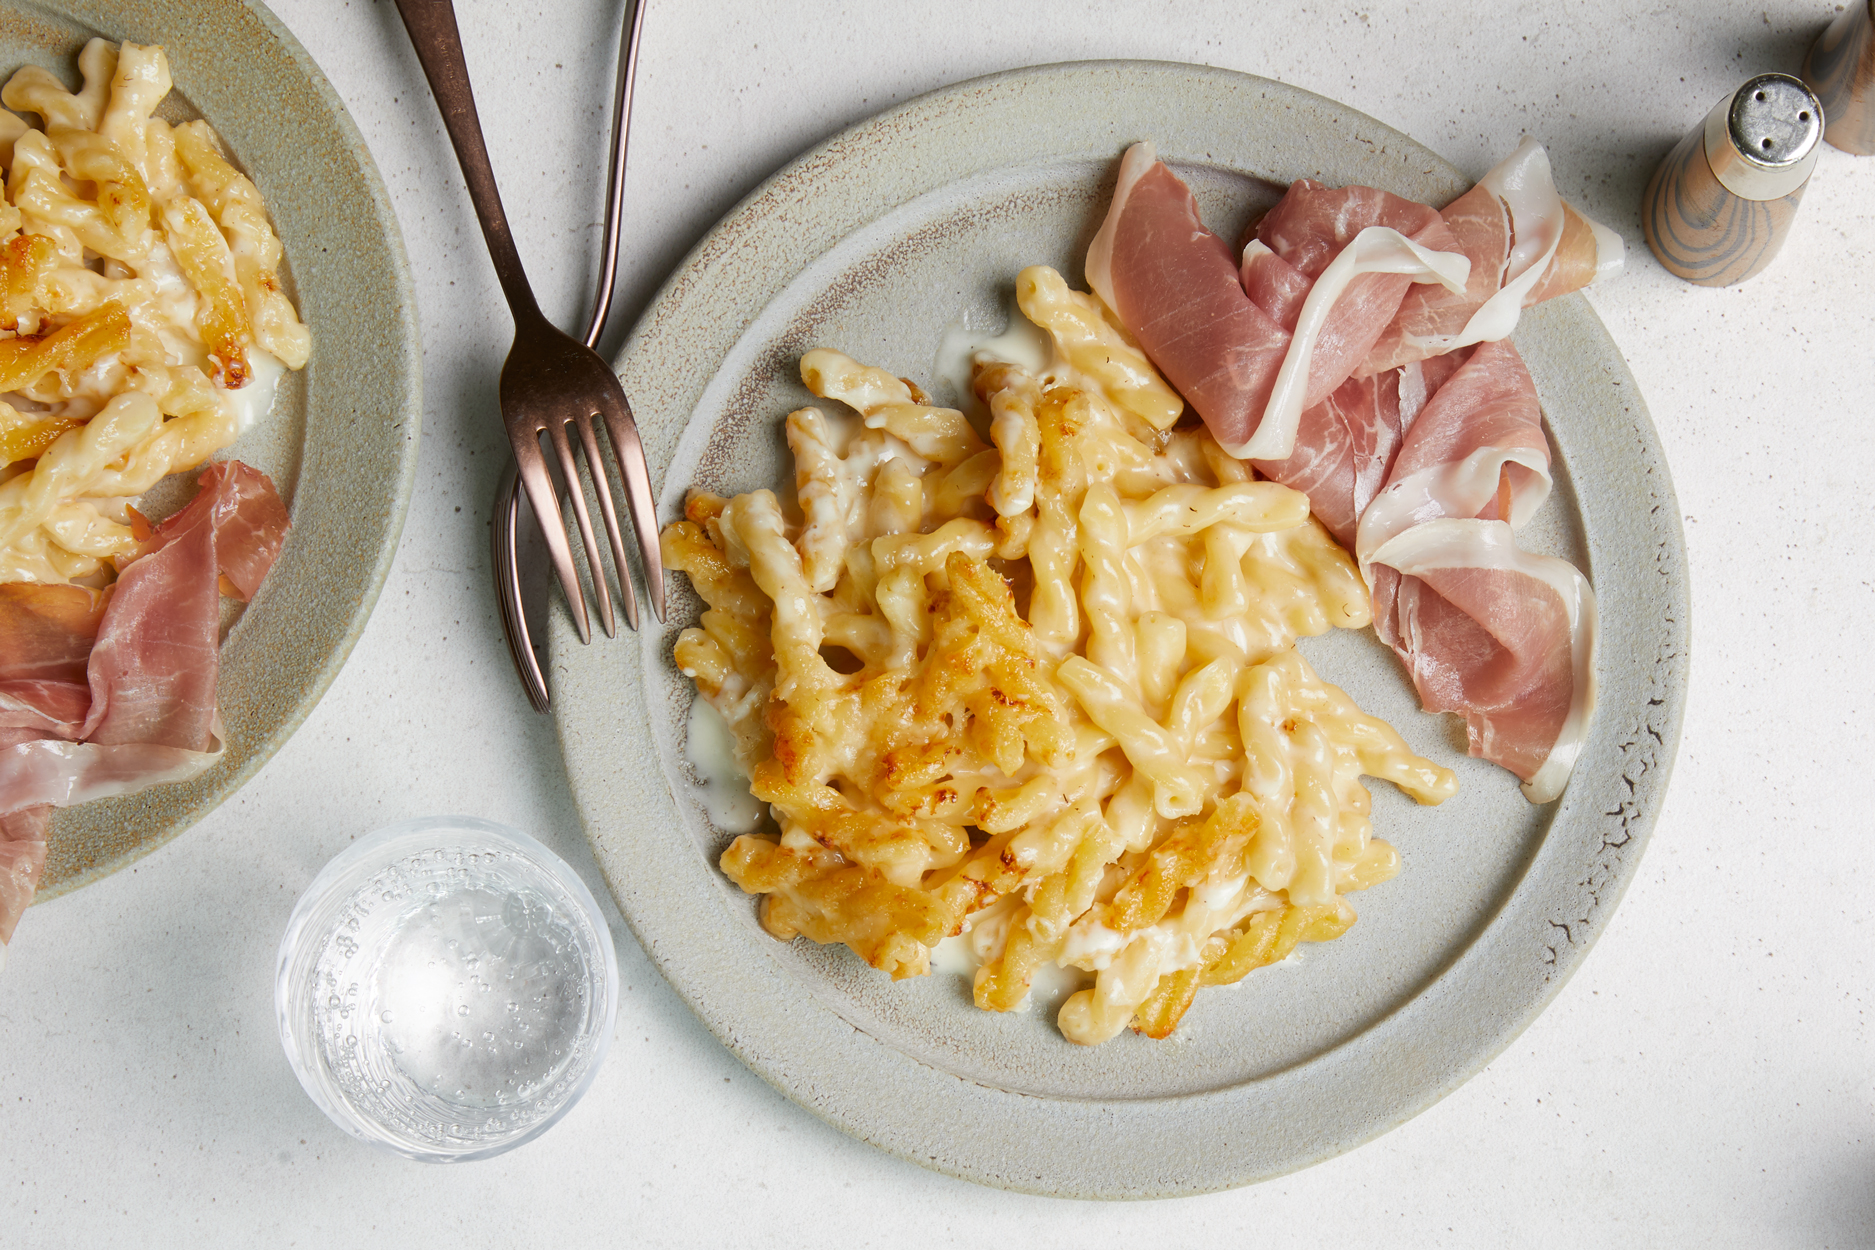 Creamy Baked Pasta with Gruyere and Prosciutto